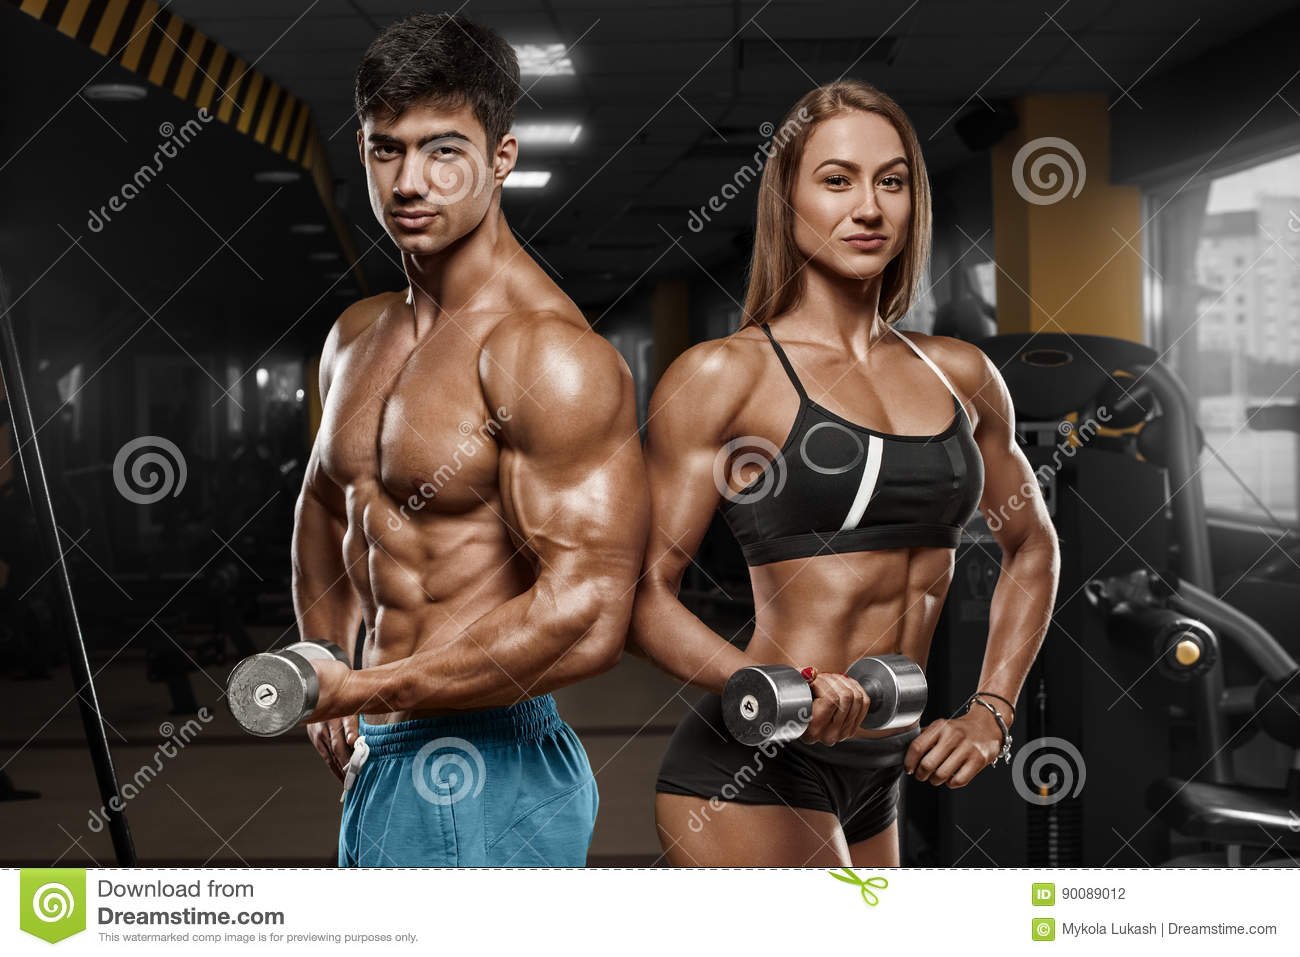 Sporty couple showing muscle and workout in gym. Muscular man and wowan